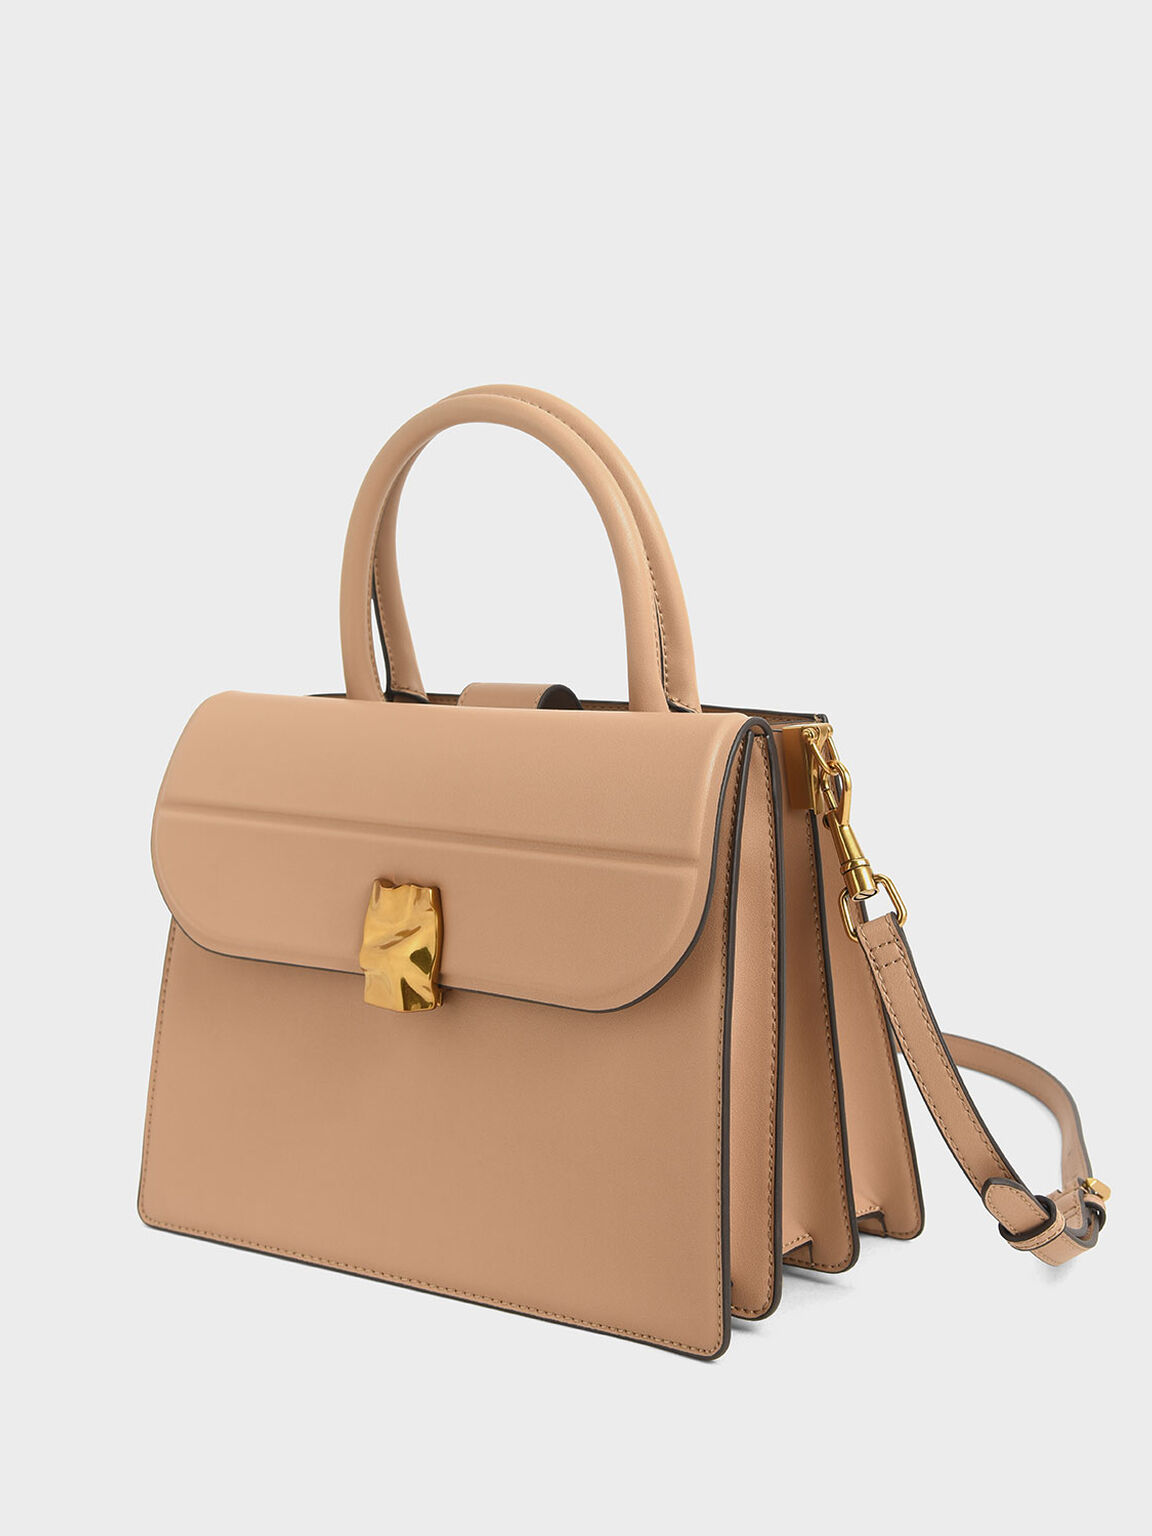 Structured Tote, Beige, hi-res